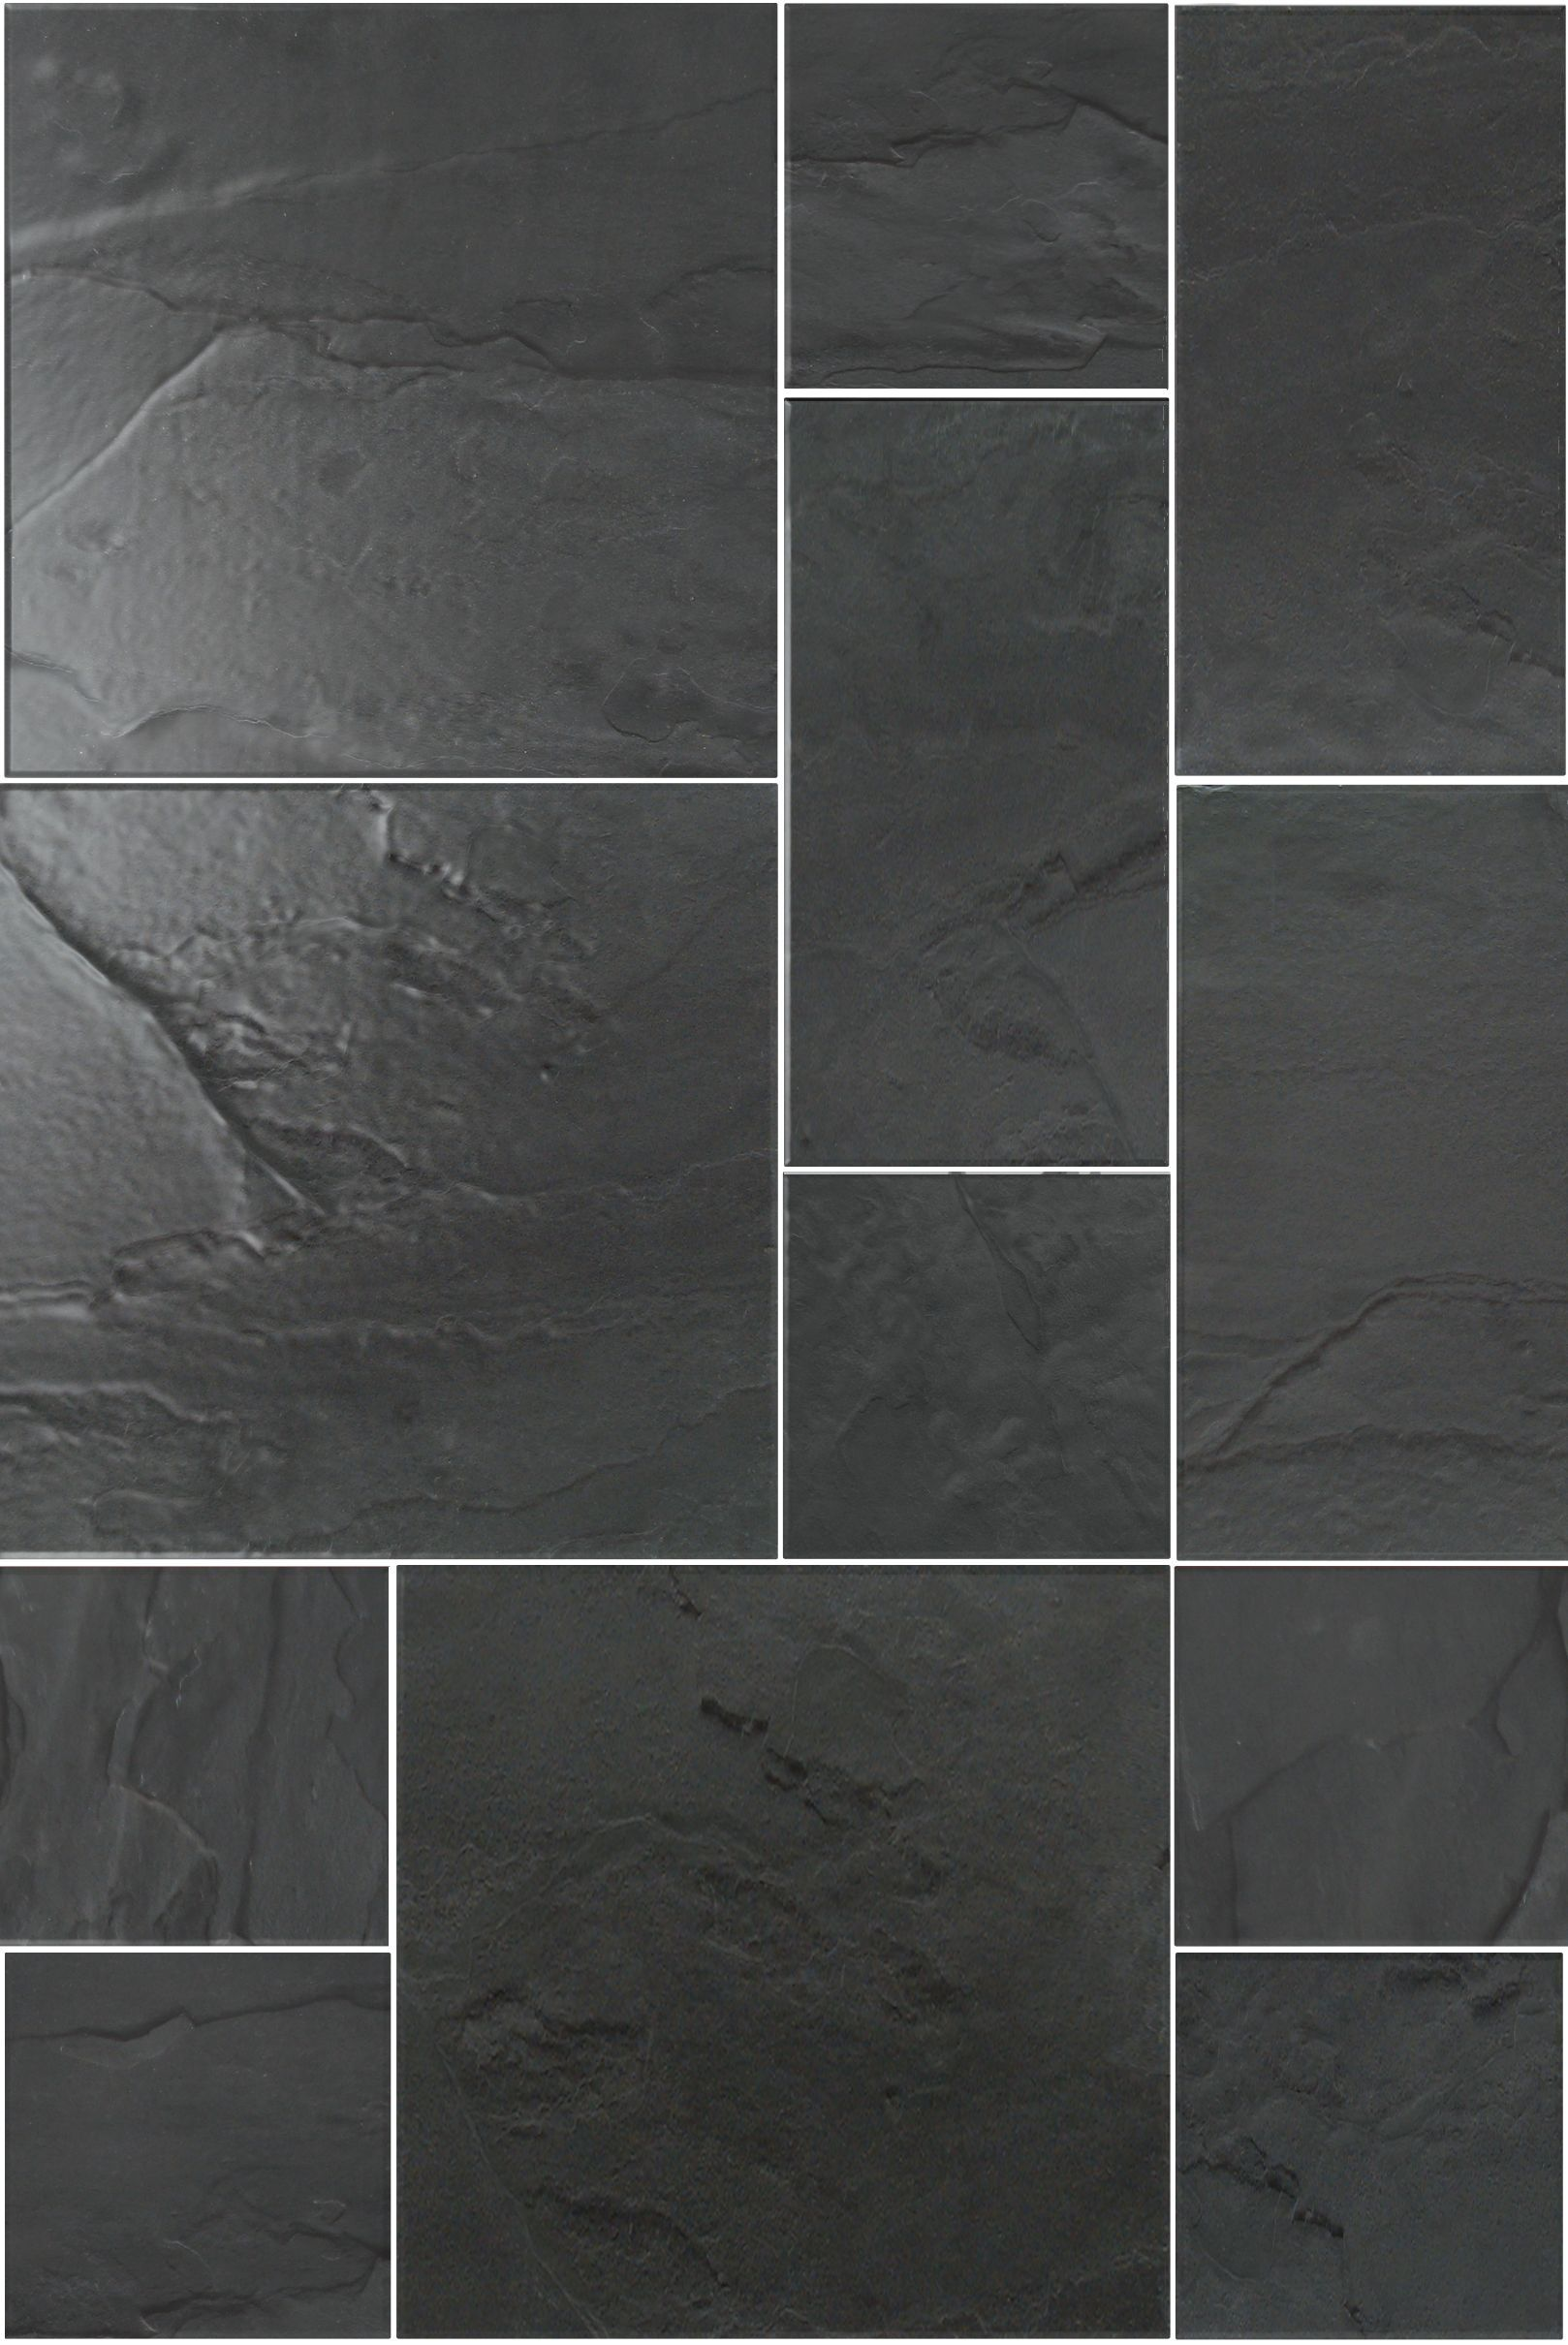 Black slate showers rustic black slate modular uncalibrated p information about rustic black slate modular uncalibrated tile dailygadgetfo Image collections